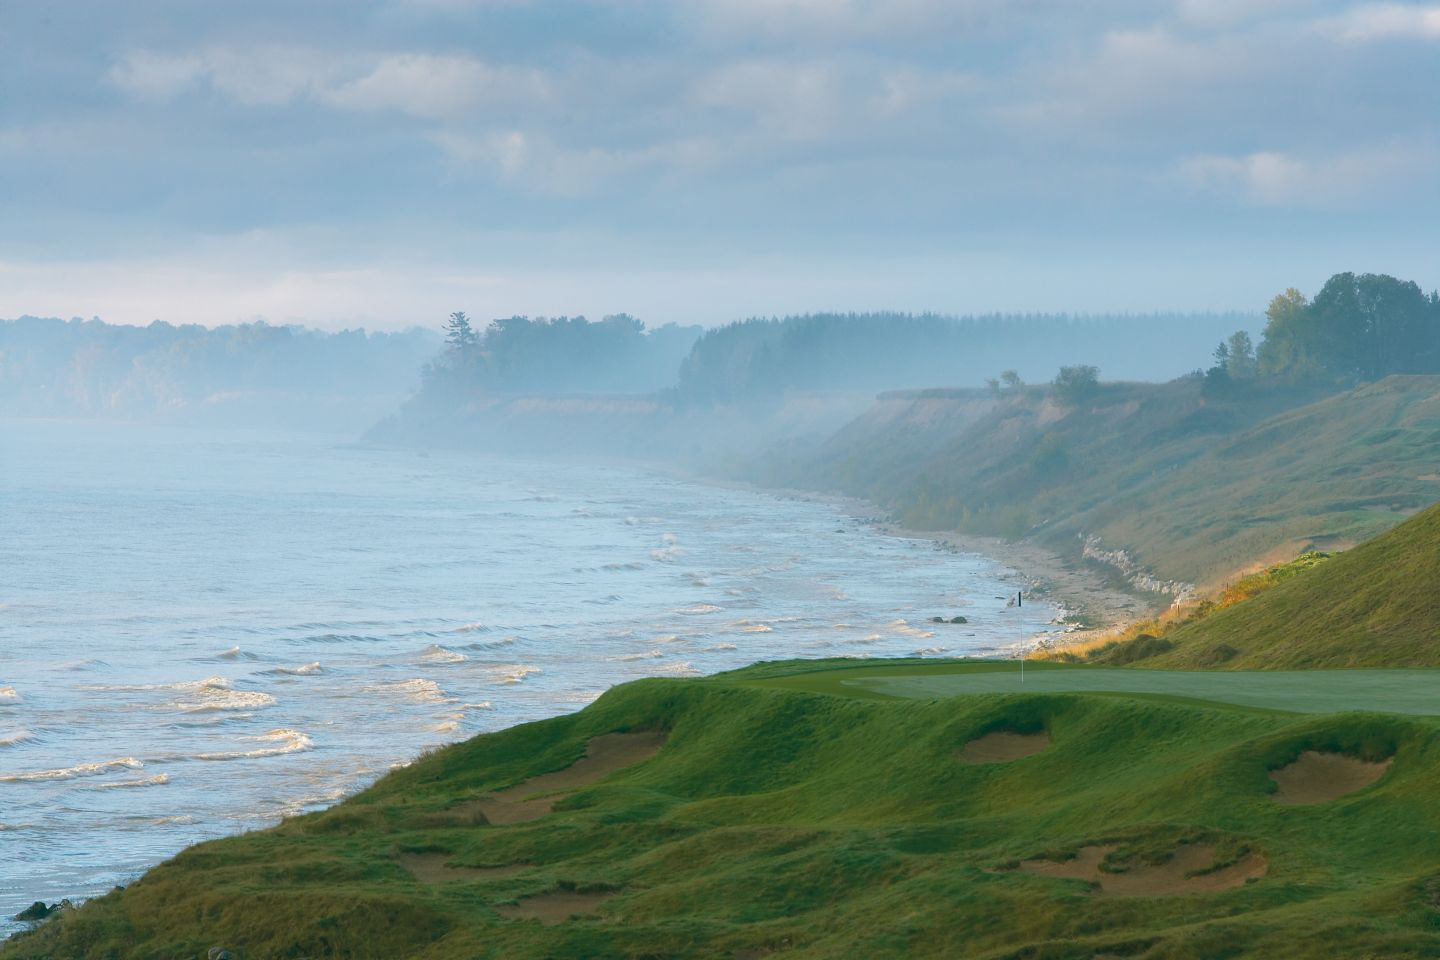 The Lake Michigan shoreline with light fog and waves next to the Straits Course.